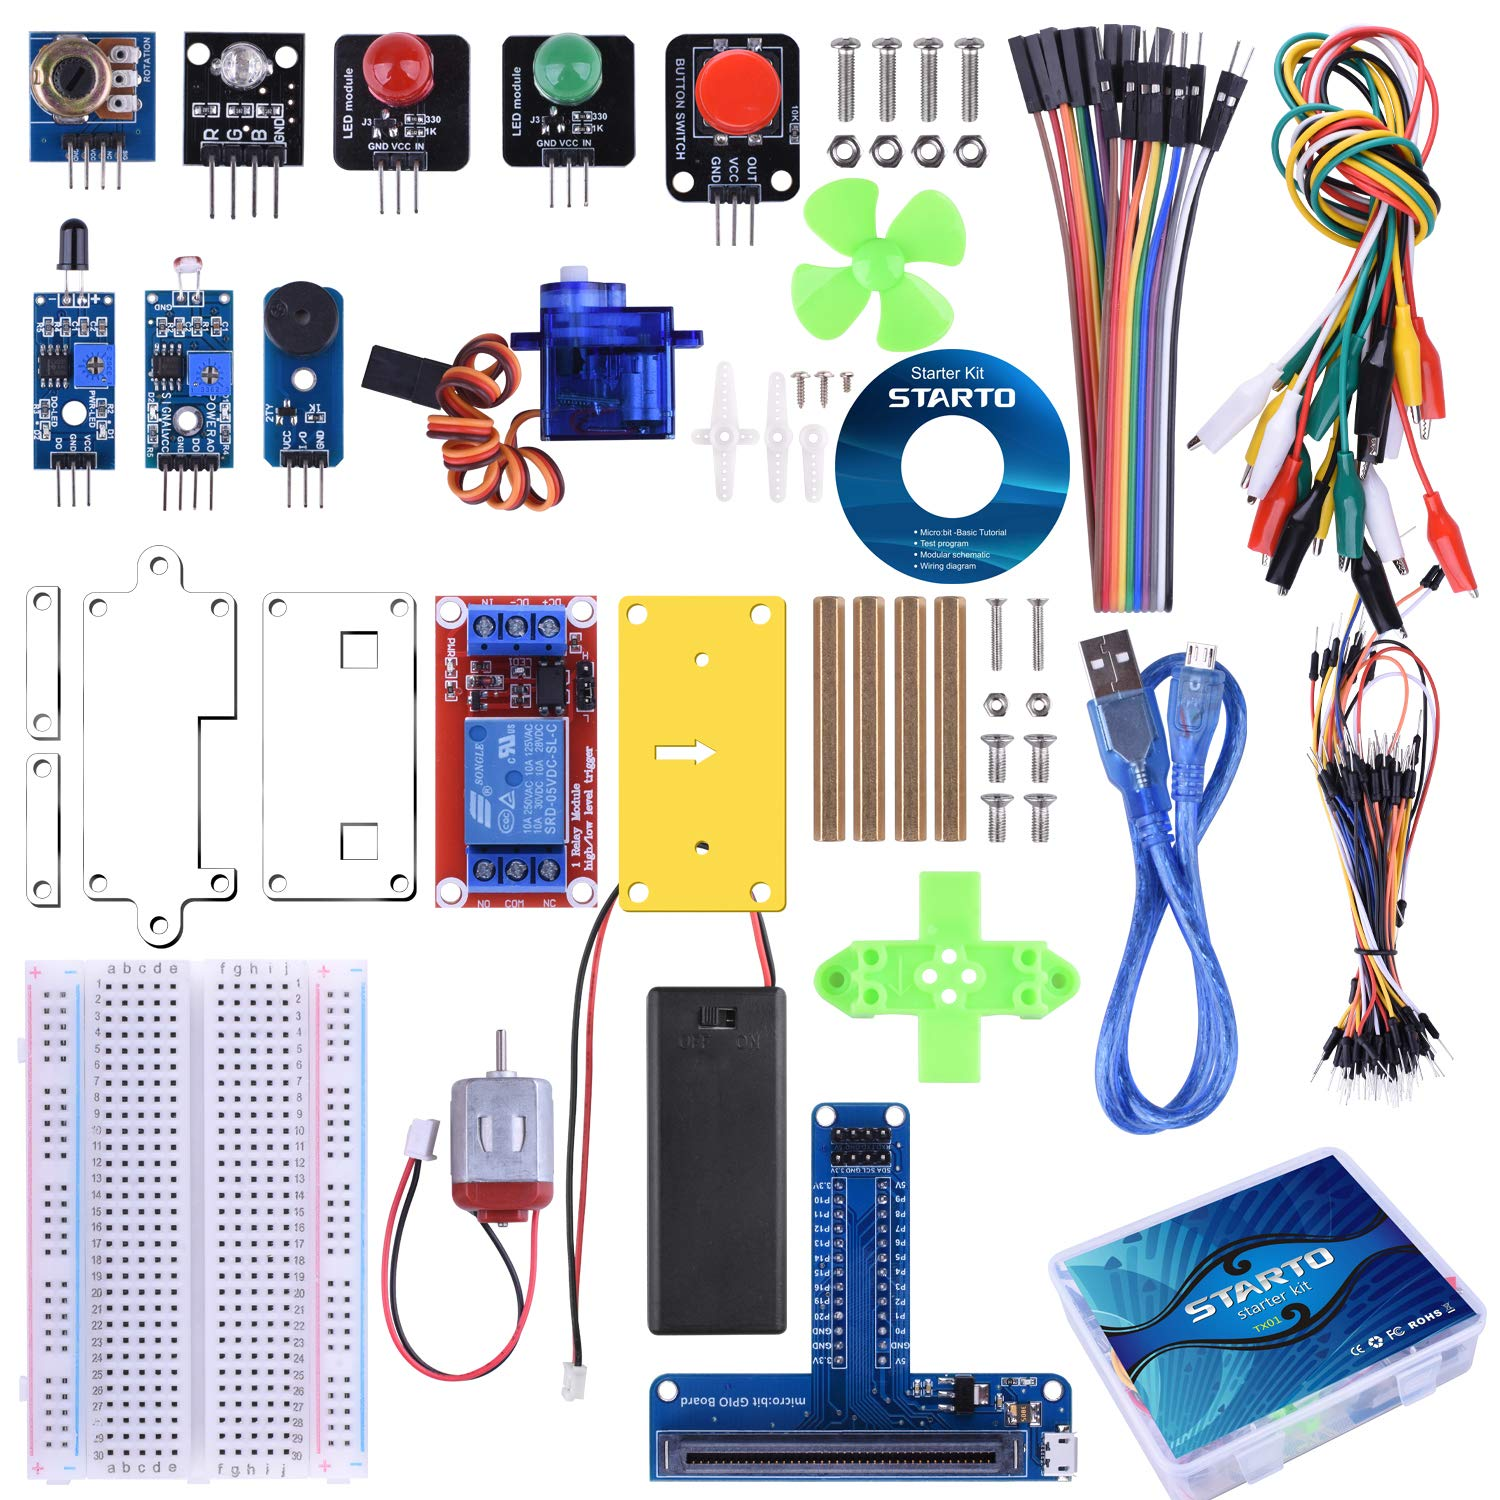 STARTO Starter Kit for BBC Micro:bit, Basic Coding Kit Includes Sensor, Expansion Board, Servo, Relay, Acrylic Protective case and Free Tutorial for Microbit Beginners and Kids to Learn Electronics by STARTO